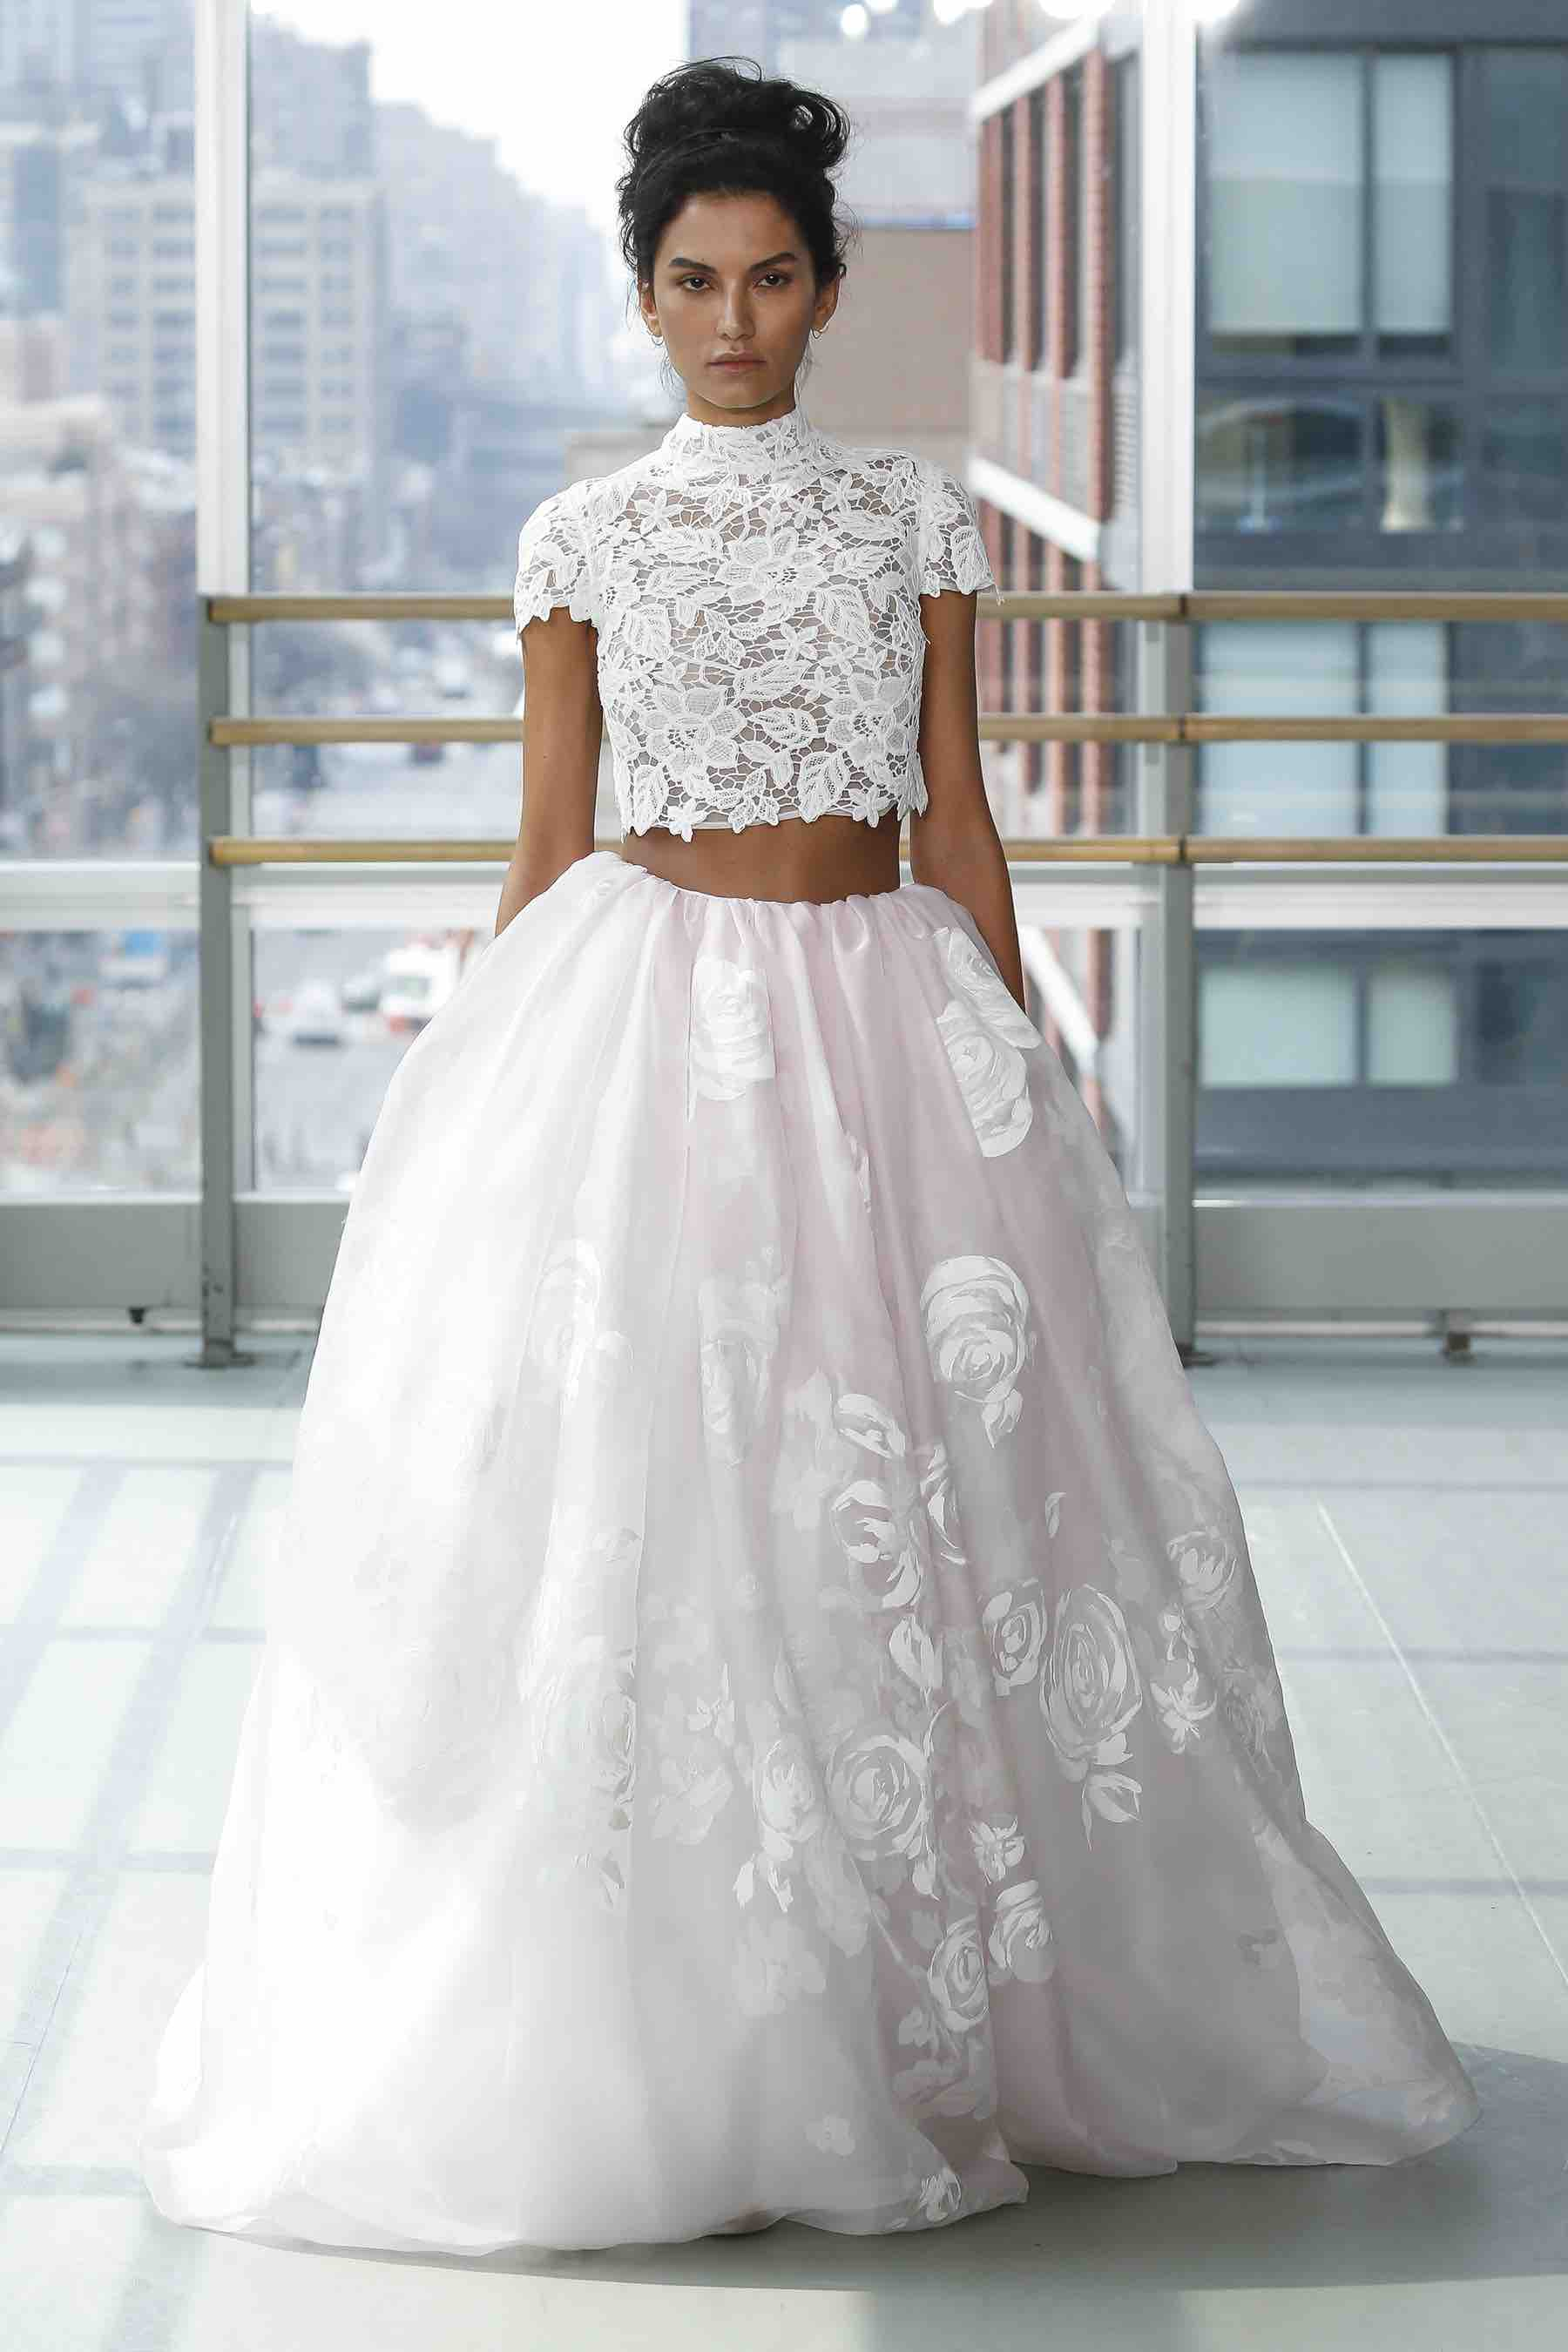 vows-of-style-gracyaccad-image15.jpg